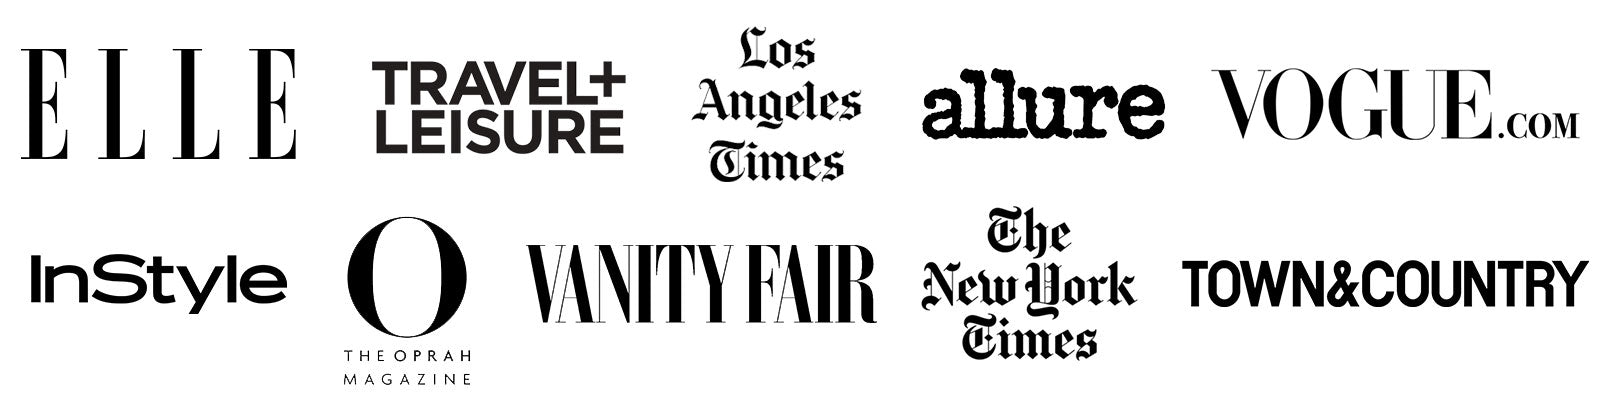 Image of Press banner